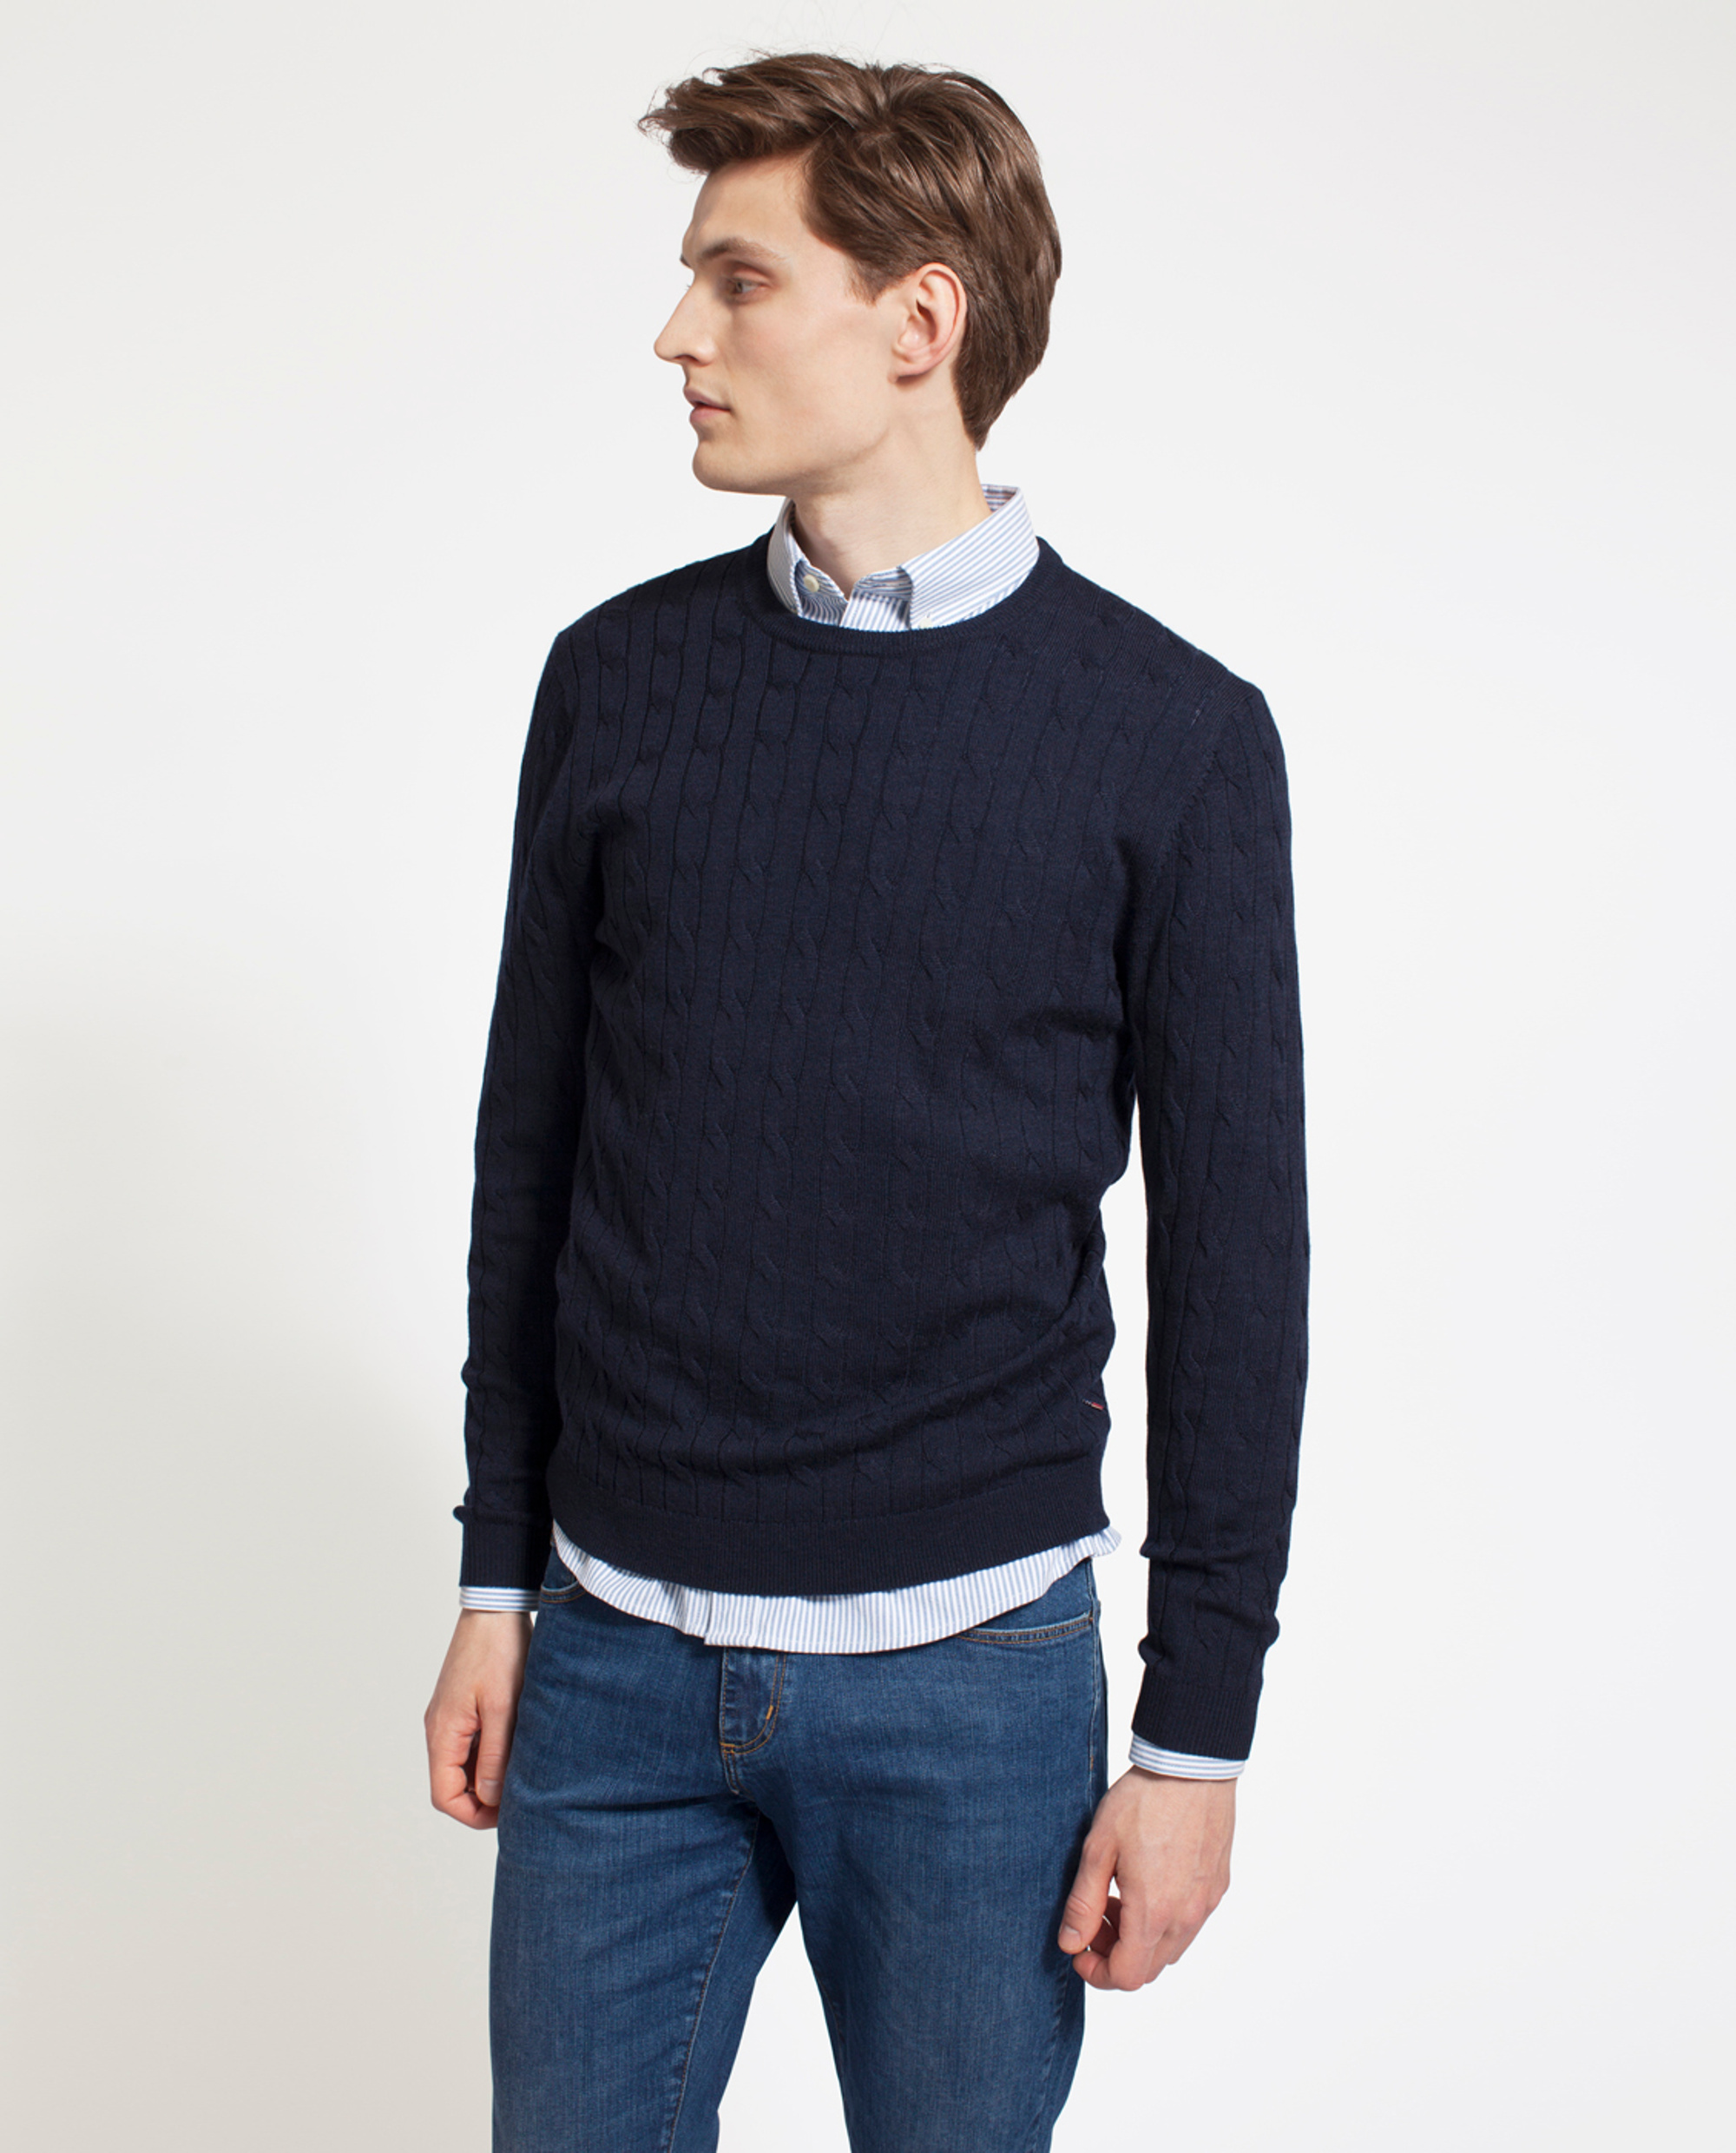 Dominic Merino Cable Sweater, Deep Marine Blue